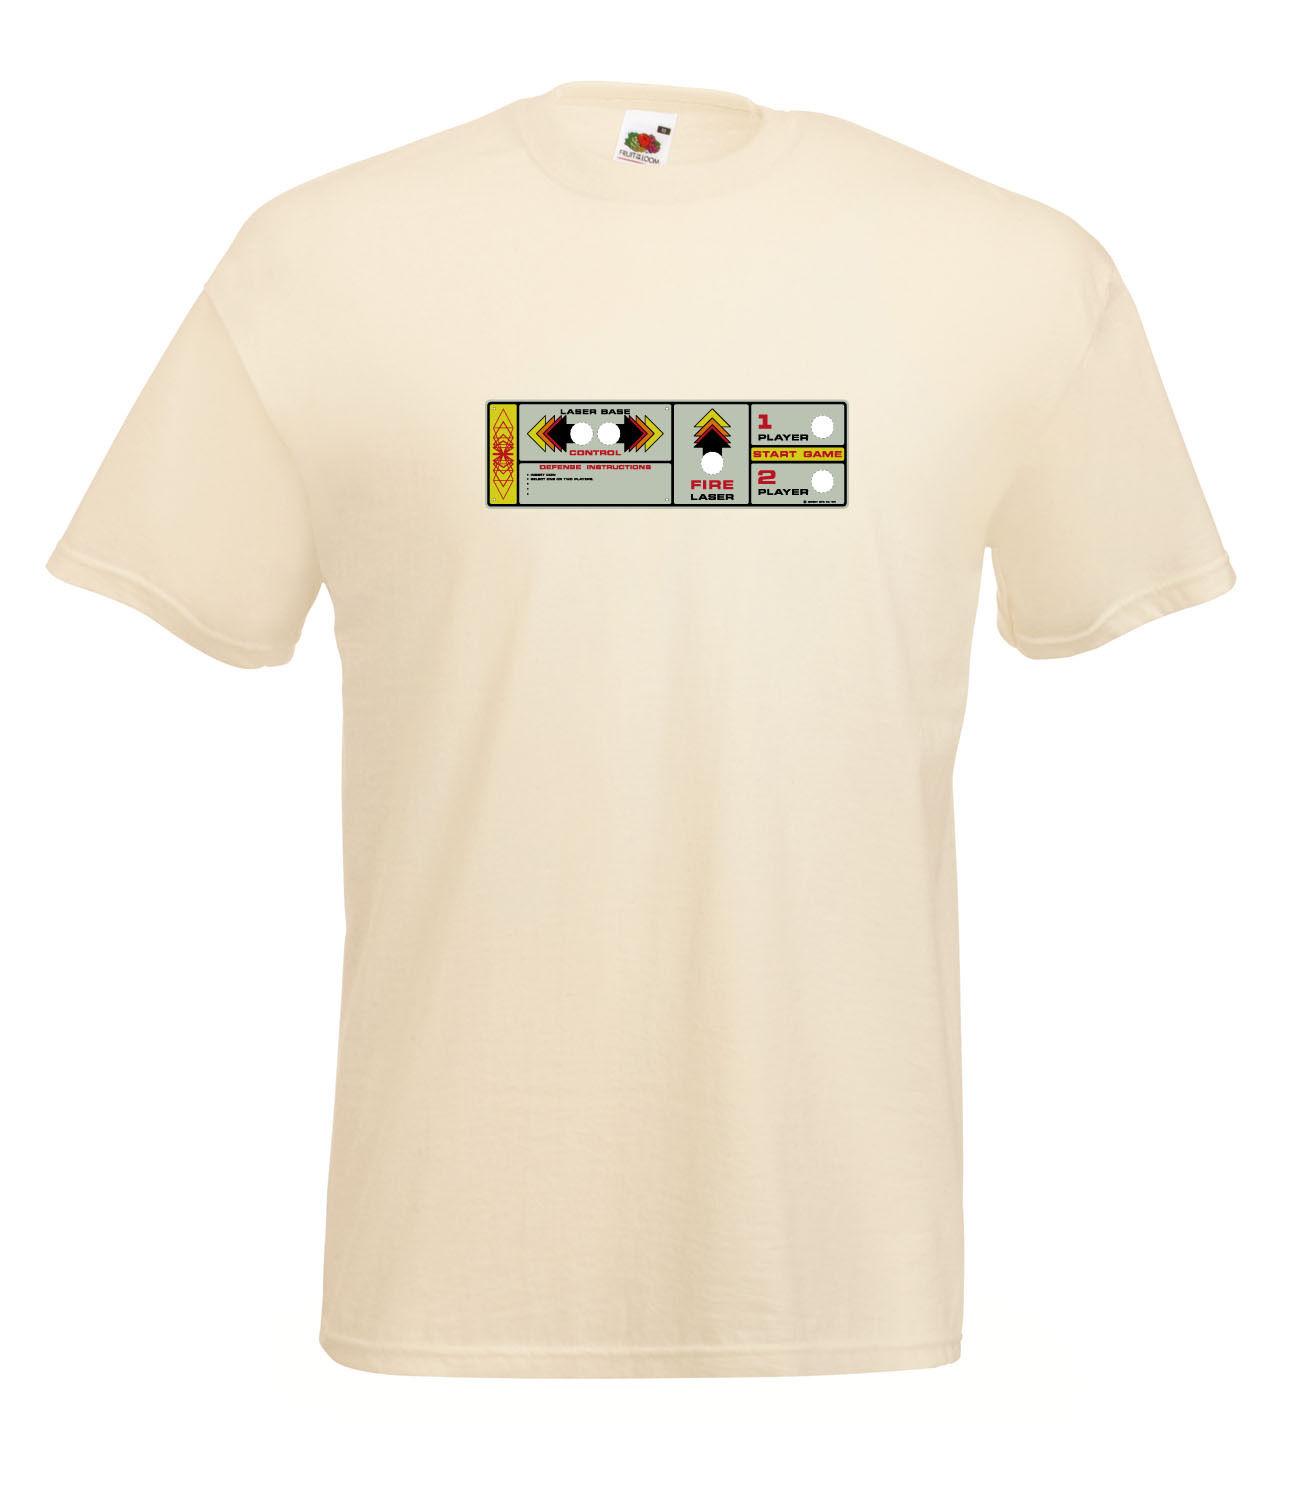 RETRO-SPACE-INVADERS-GAME-CONTROL-PANEL-INSPIRED-GRAPHIC-HIGH-QUALITY-T-SHIRT